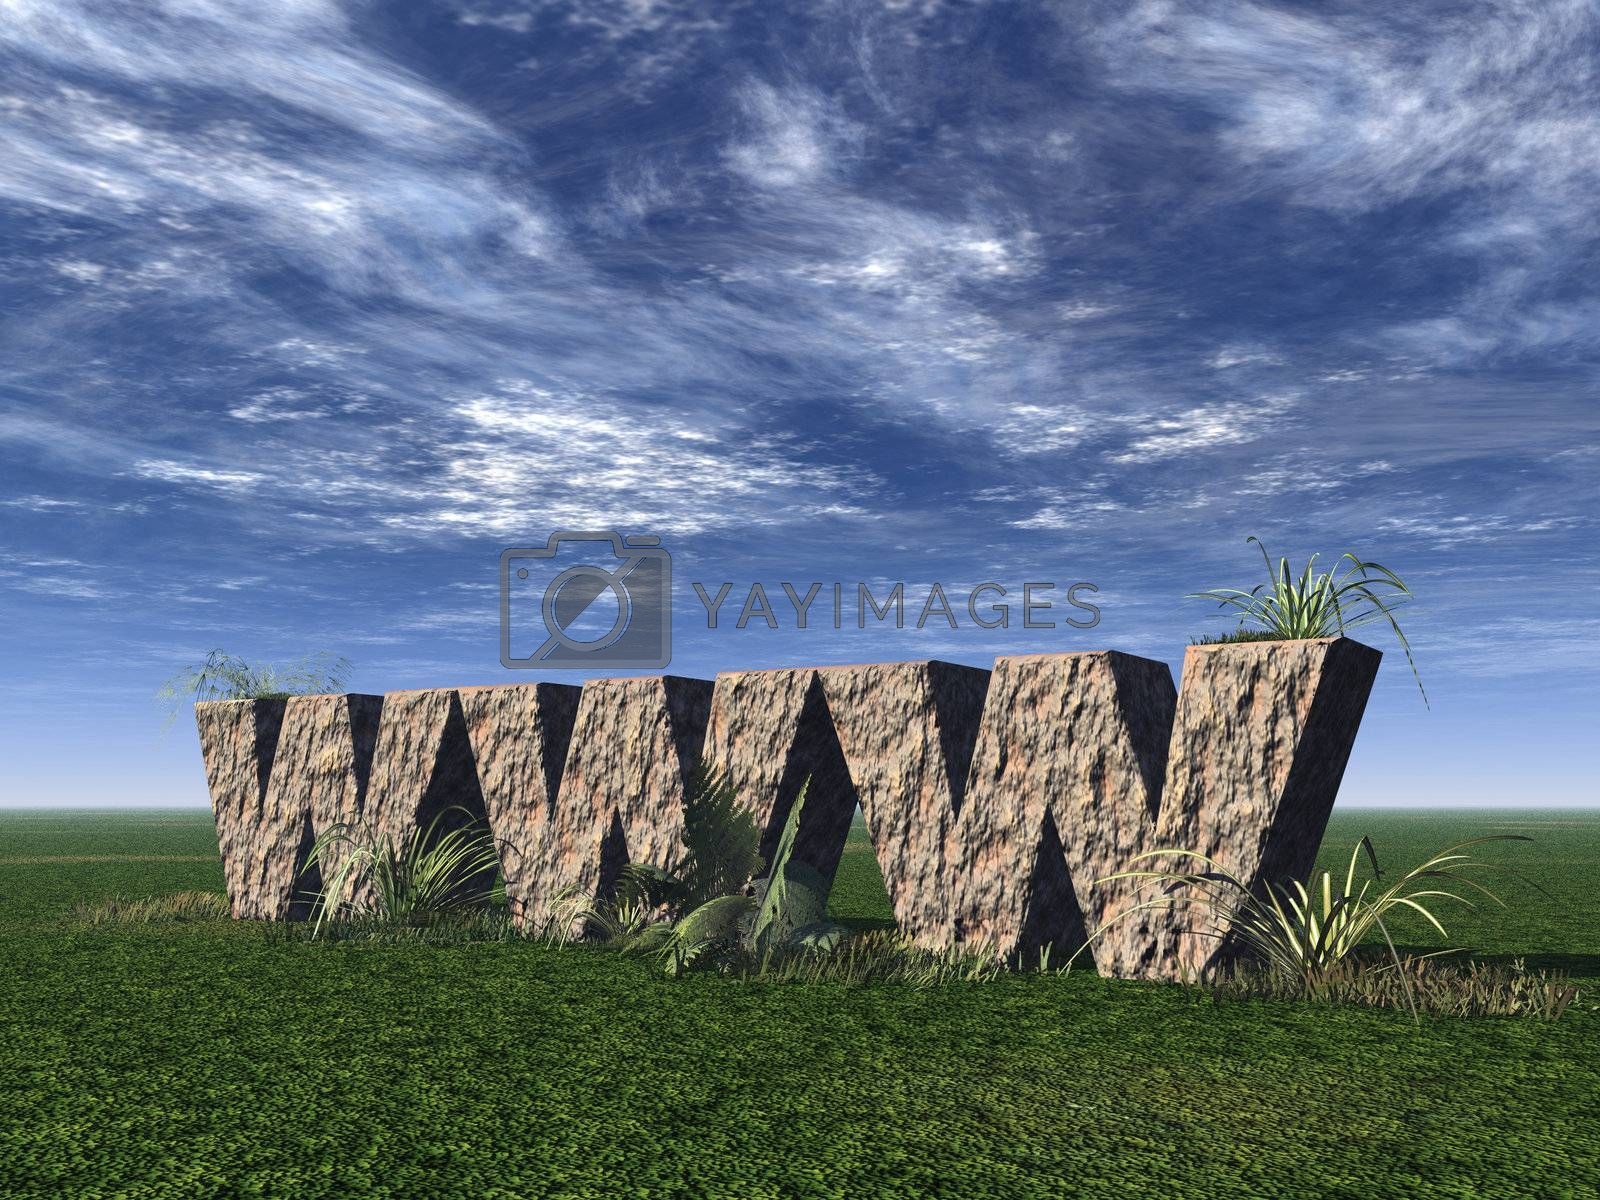 Royalty free image of www rocks by drizzd